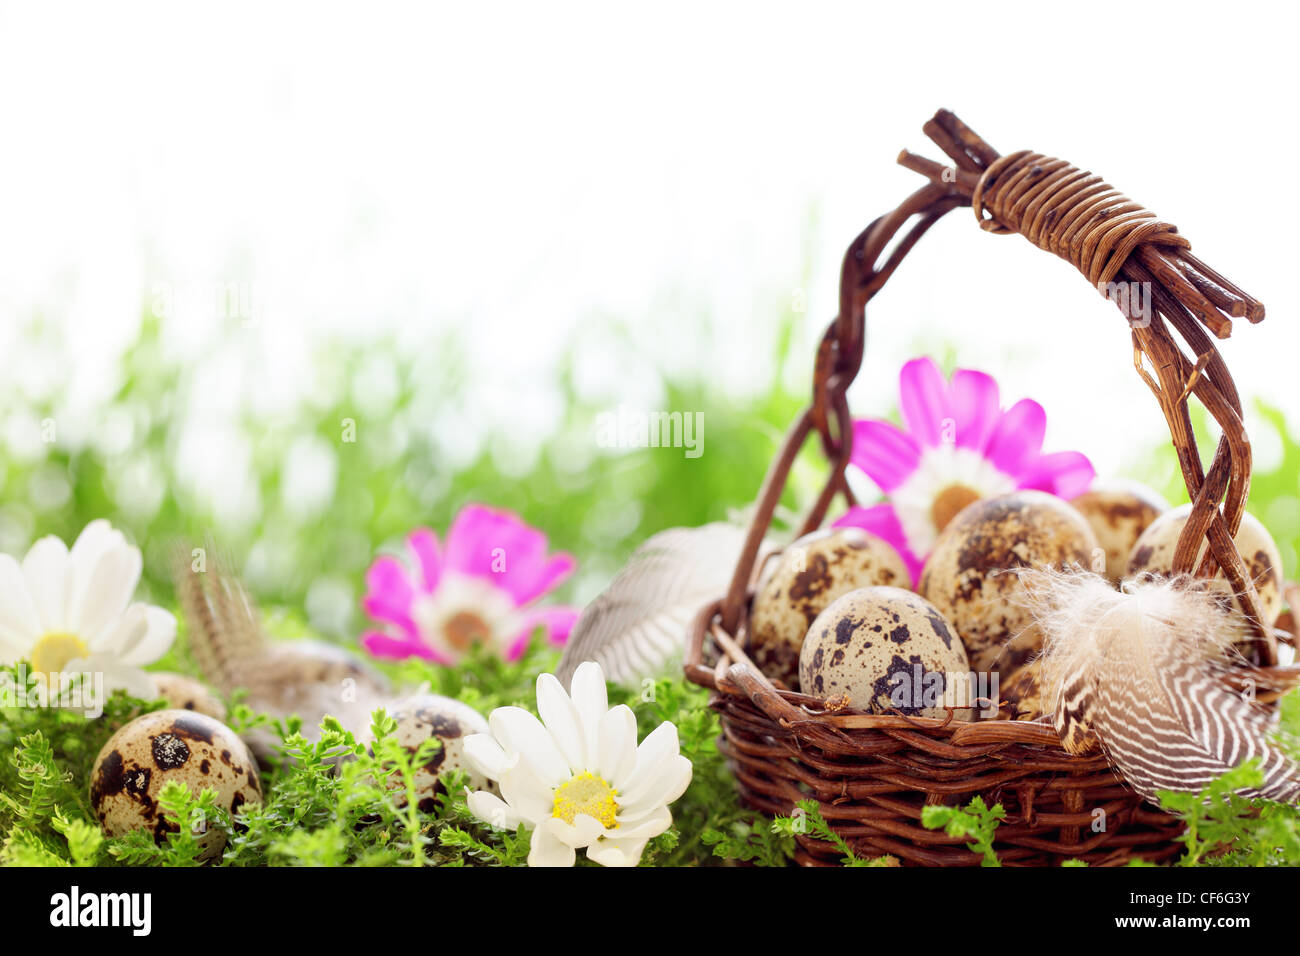 Basket of speckled easter eggs with feather on meadow. - Stock Image